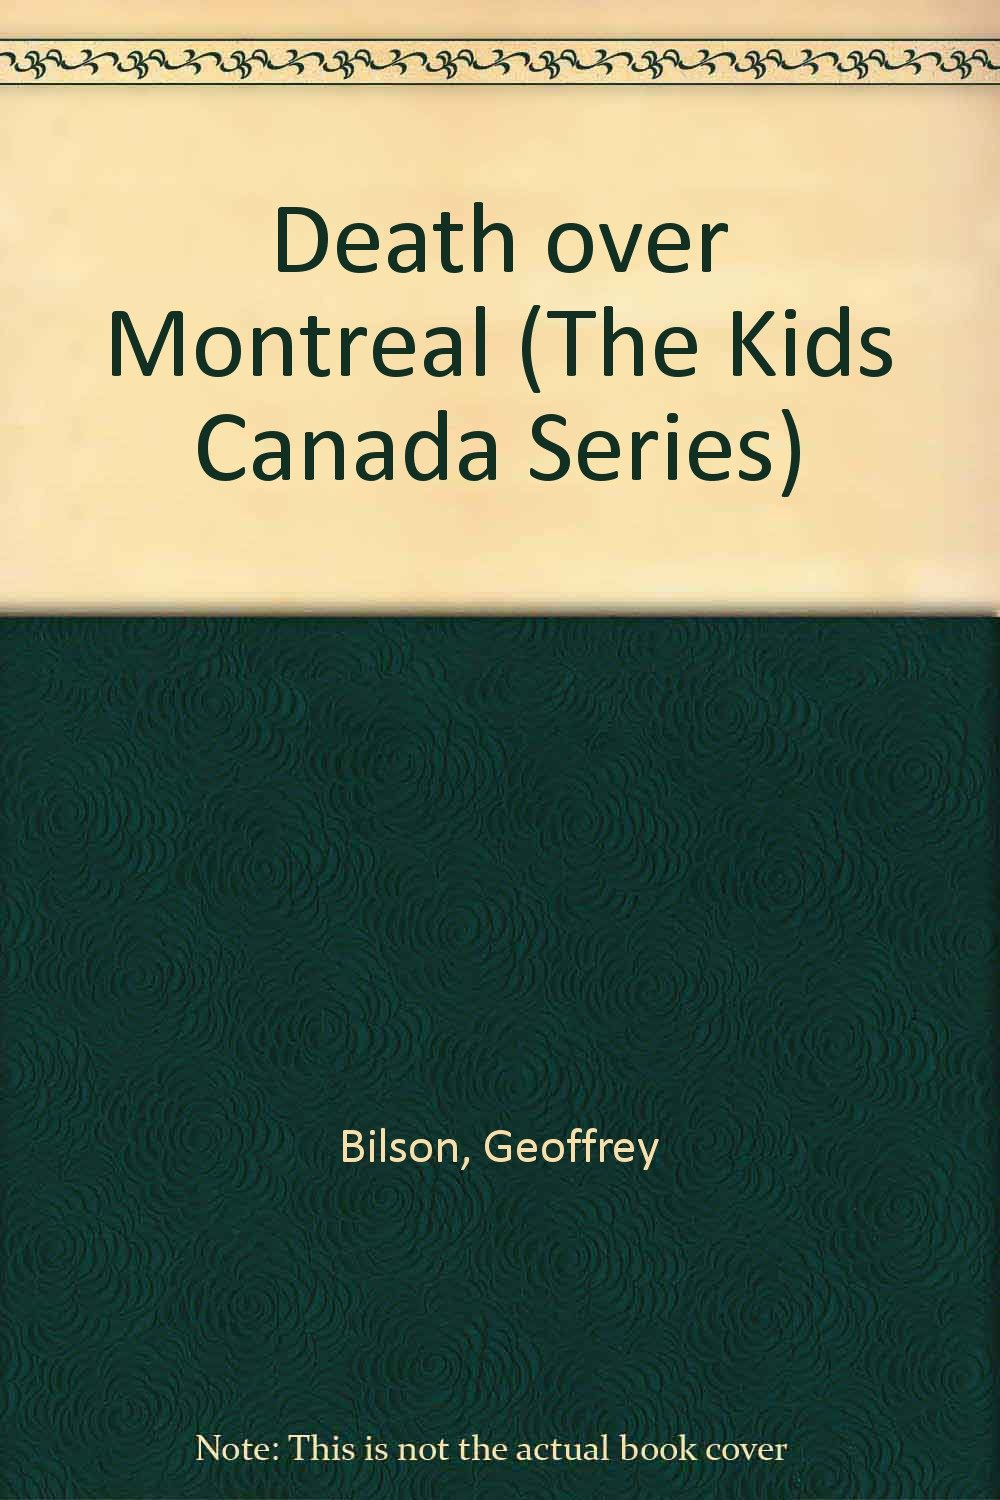 Death over Montreal (The Kids Canada Series)